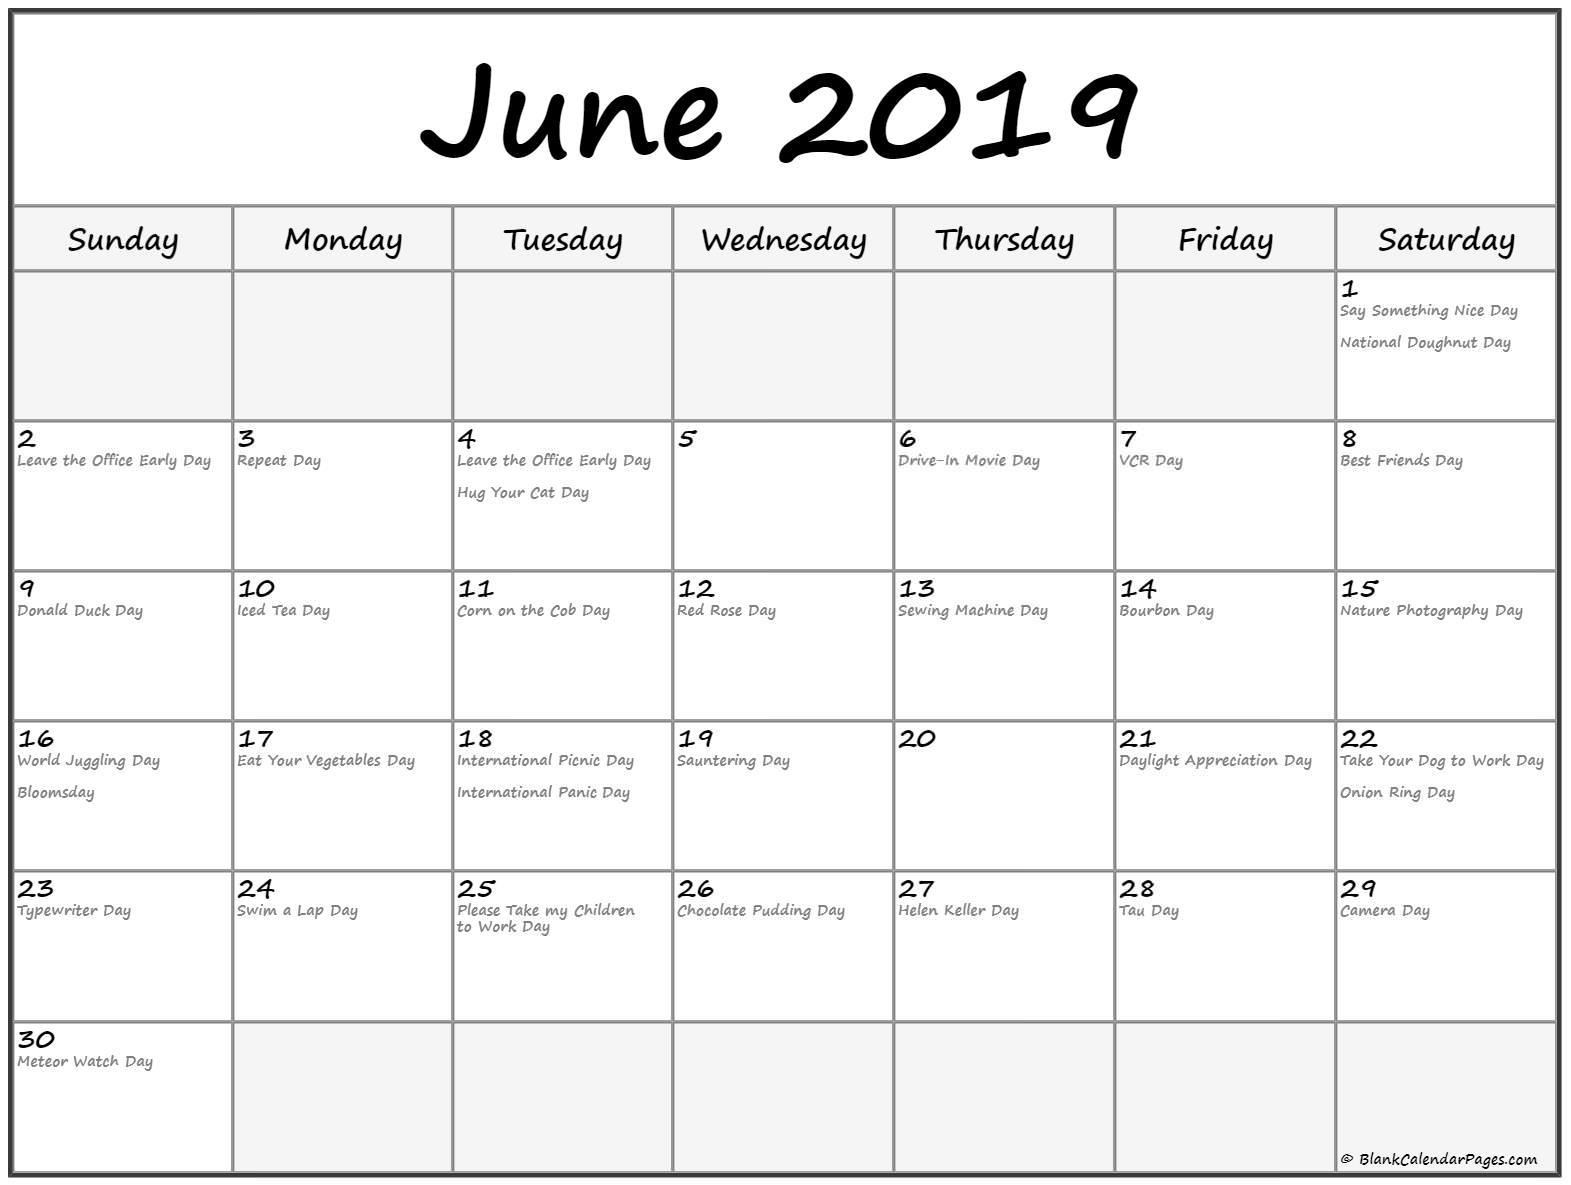 Calendar Dates For June 2019 | Template Calendar Printable inside National Day Calendar Blank